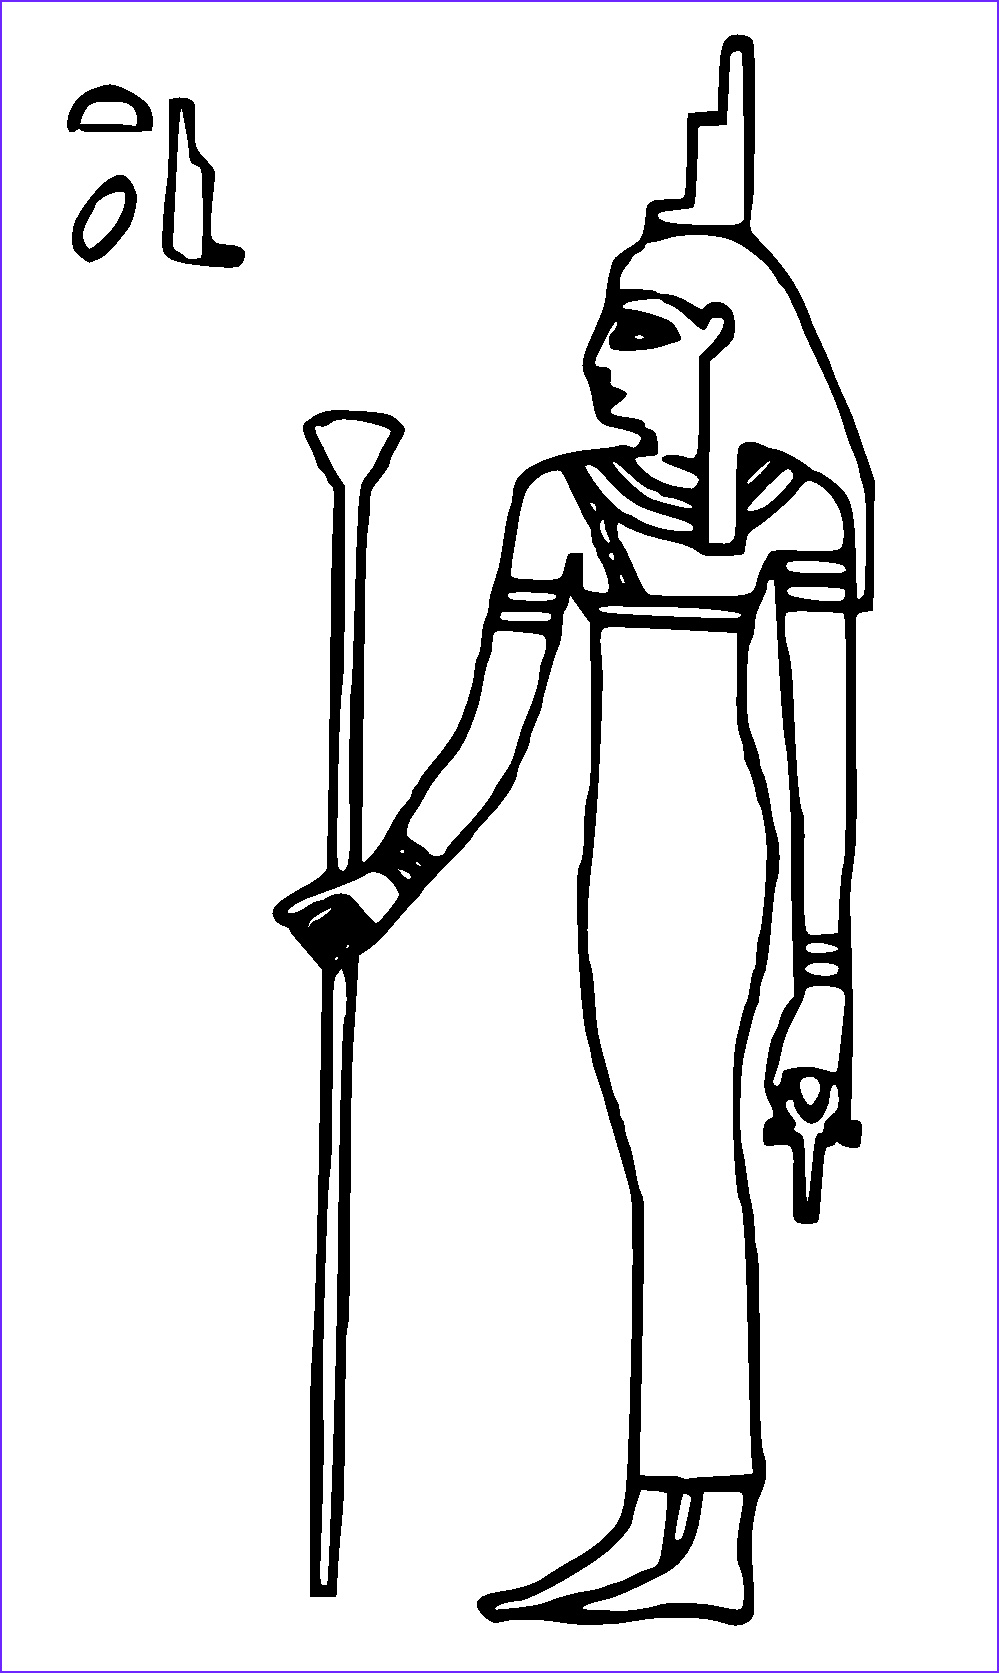 Egyptian Gods Coloring Page Unique Collection Egyptian Mythology 14 Gods and Goddesses – Printable